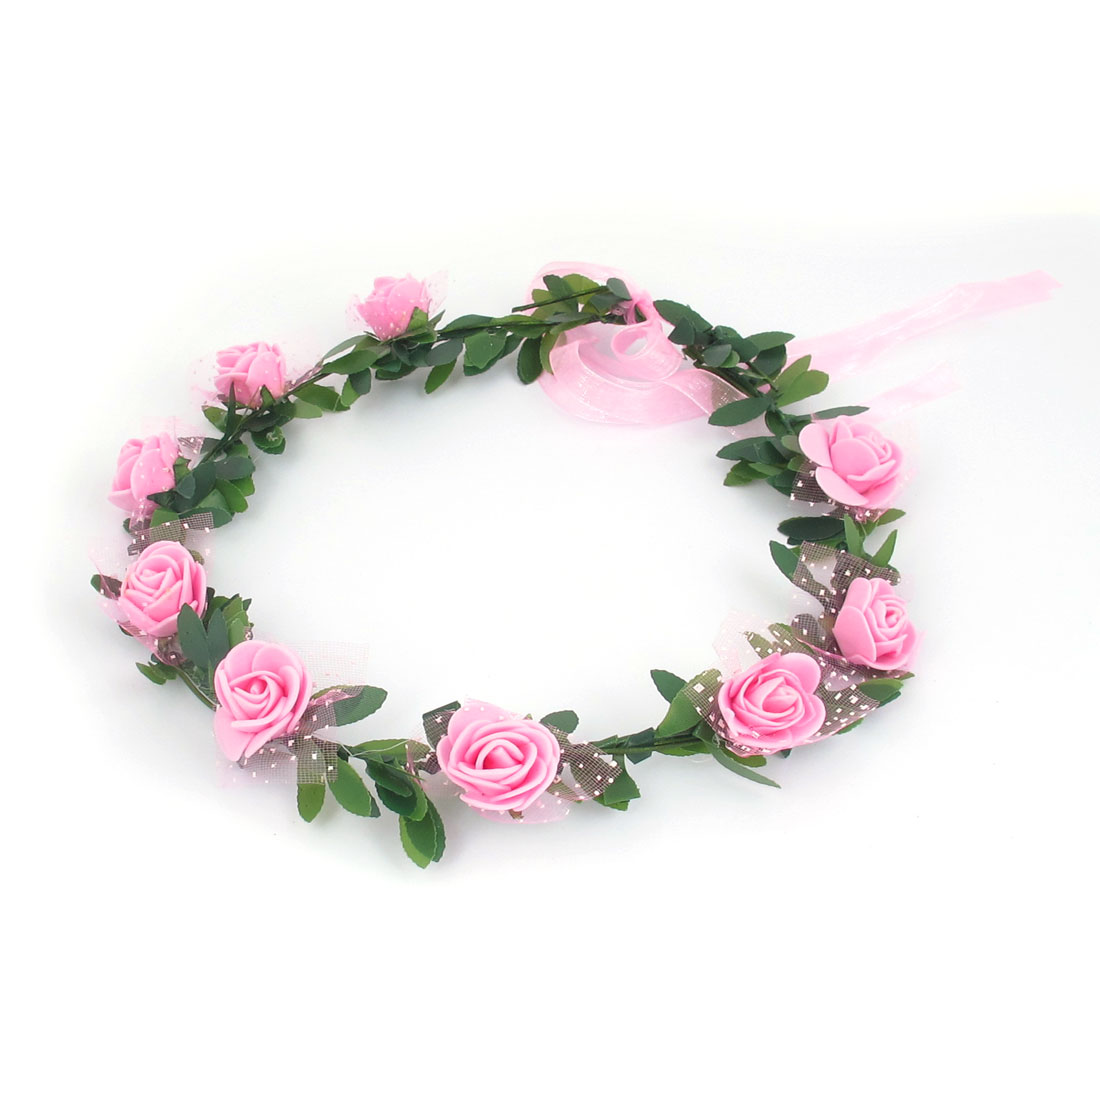 Lady Wedding Party Flower Decor Adjustable Headwear Headdress Hair Crown Wreath Pink